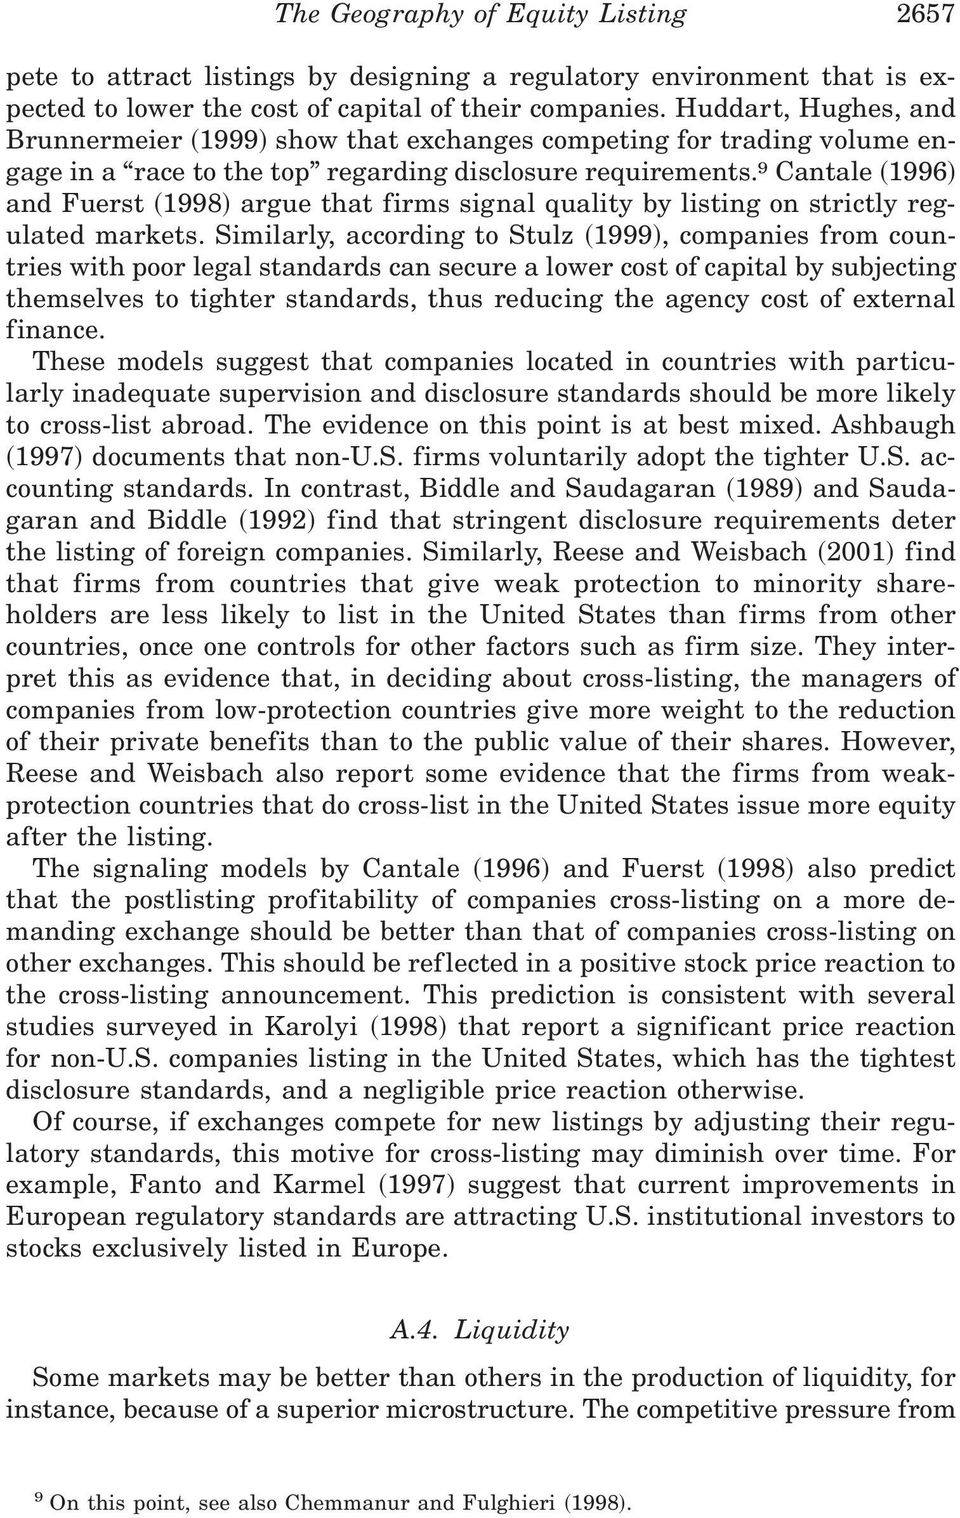 argue that firms signal quality by listing on strictly regulated markets. Similarly, according to Stulz ~1999!